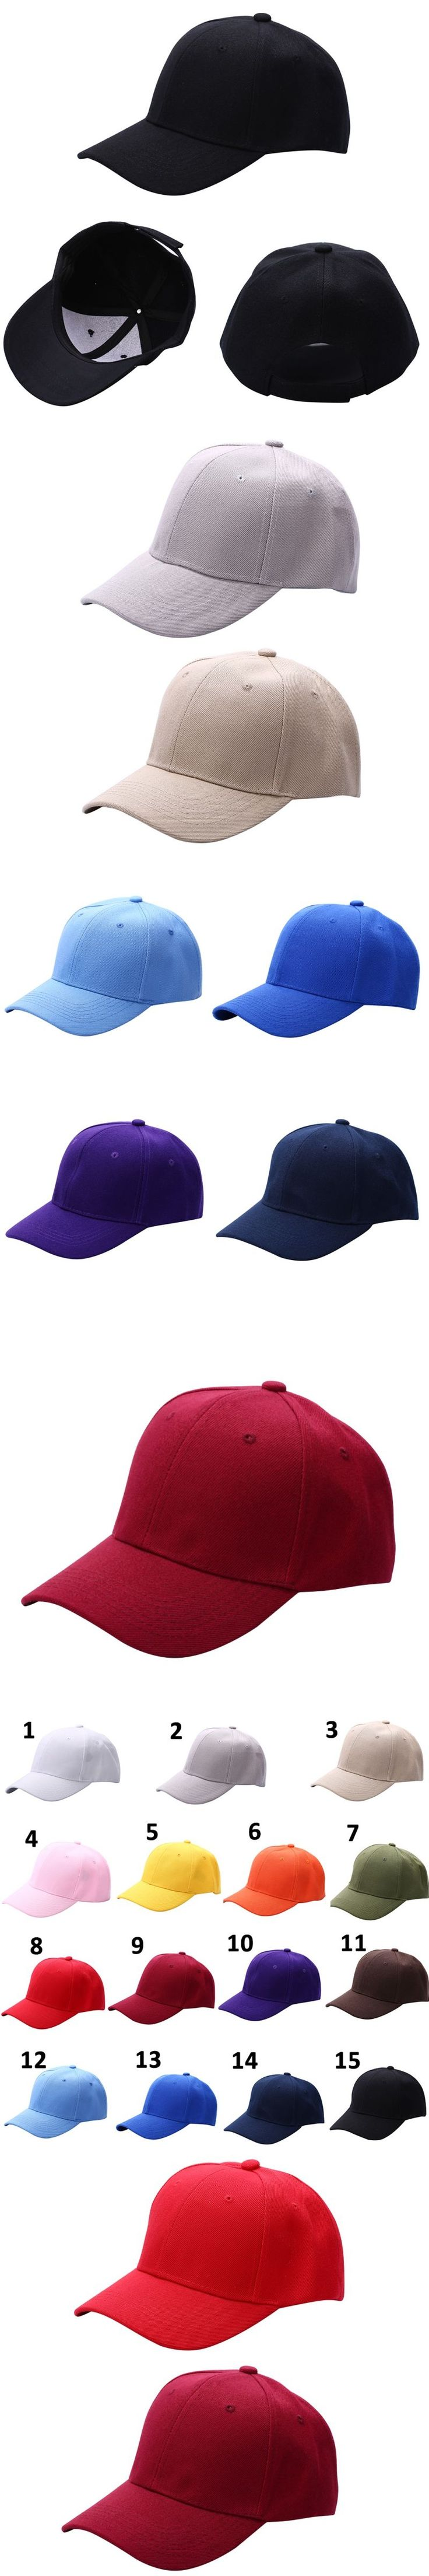 Fashion Men Women Plain Baseball Cap Unisex Curved Visor Hat Hip-Hop Adjustable Peaked Hat Visor Caps Solid Color 15